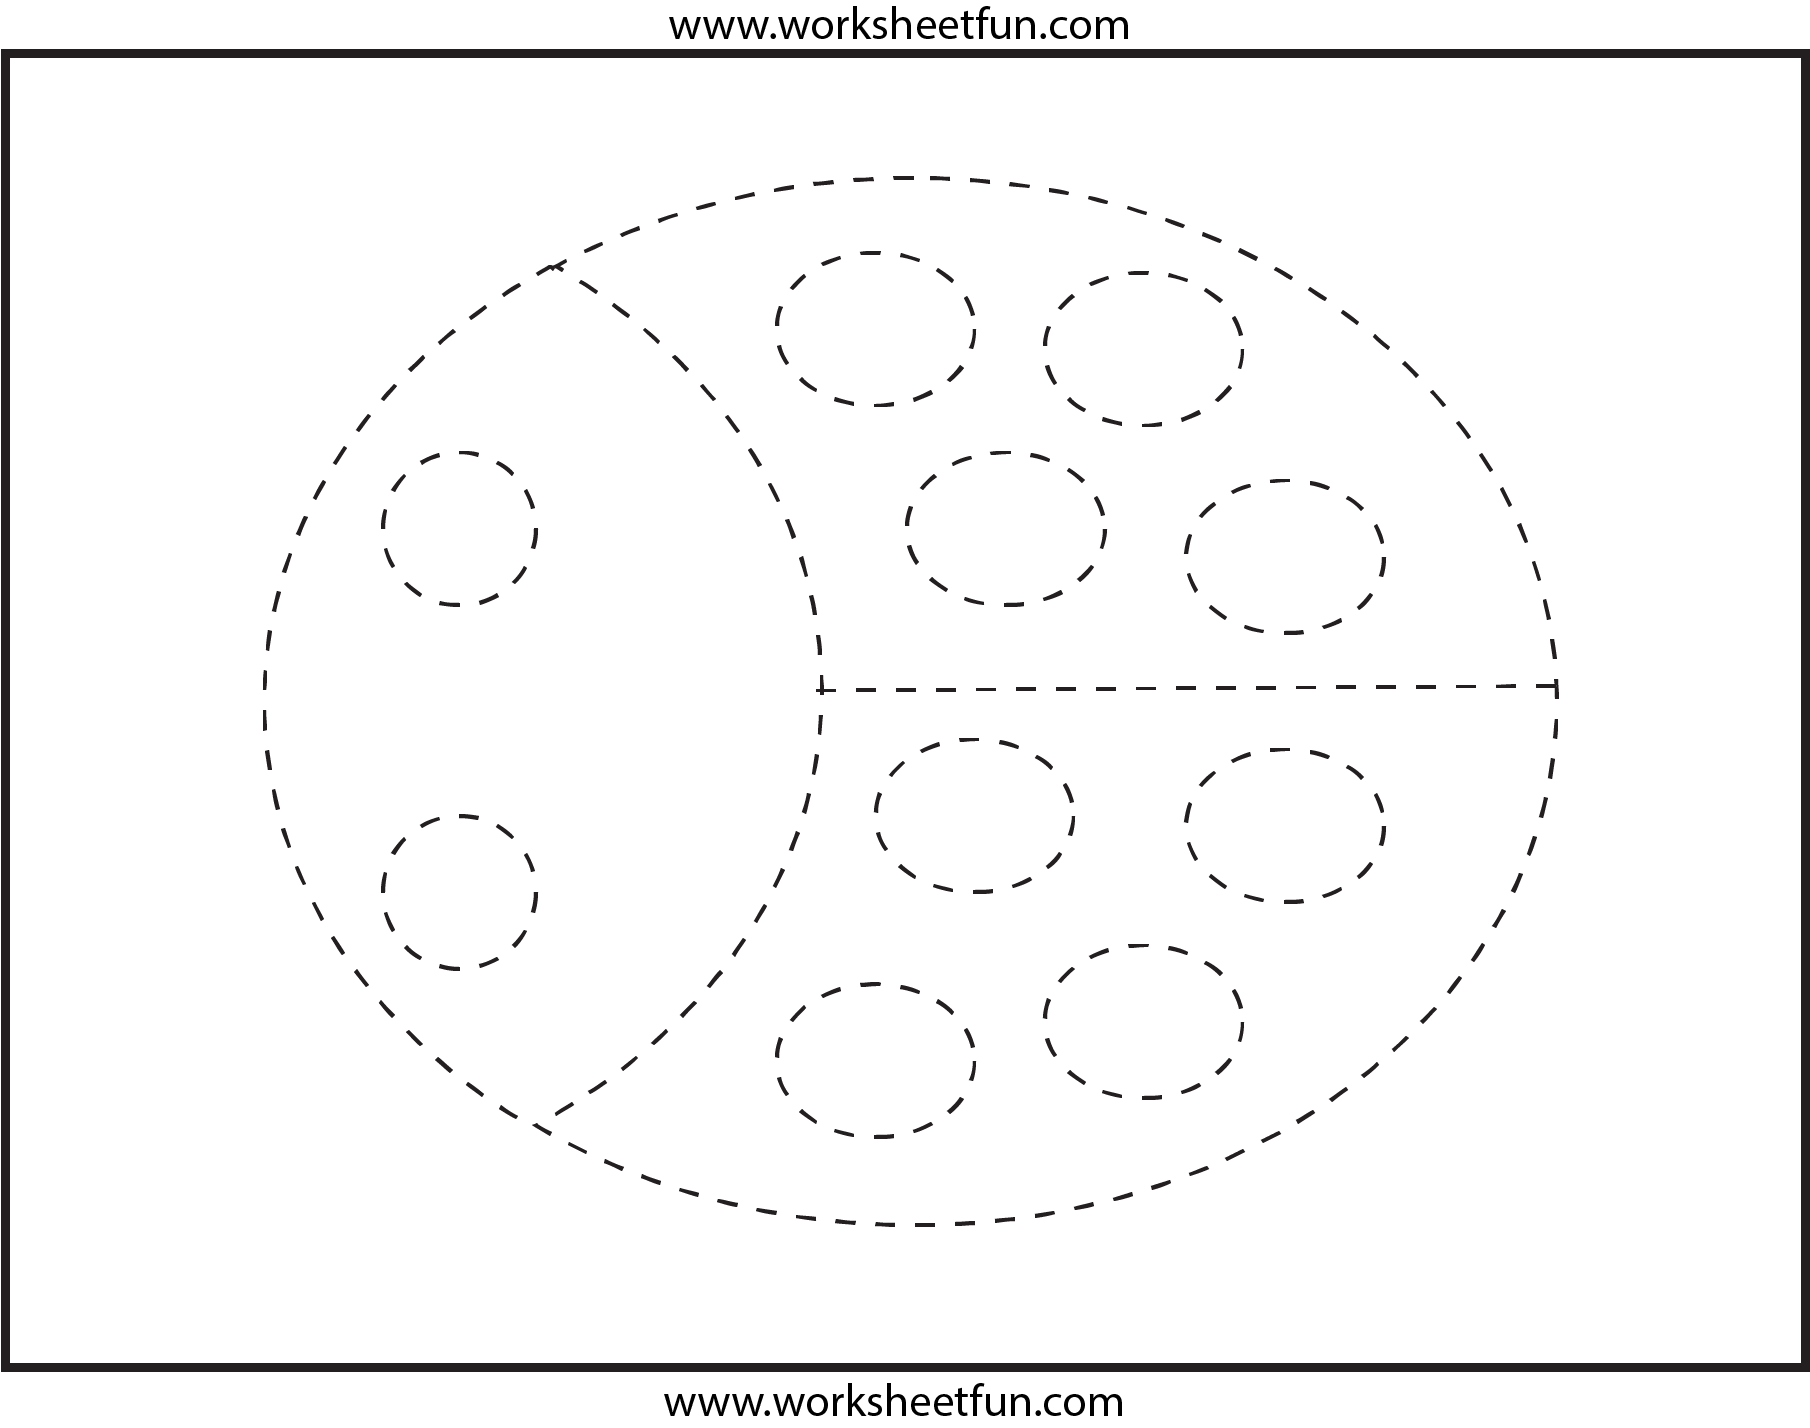 math worksheet : tracing worksheet  khayav : Free Printable Tracing Worksheets For Kindergarten